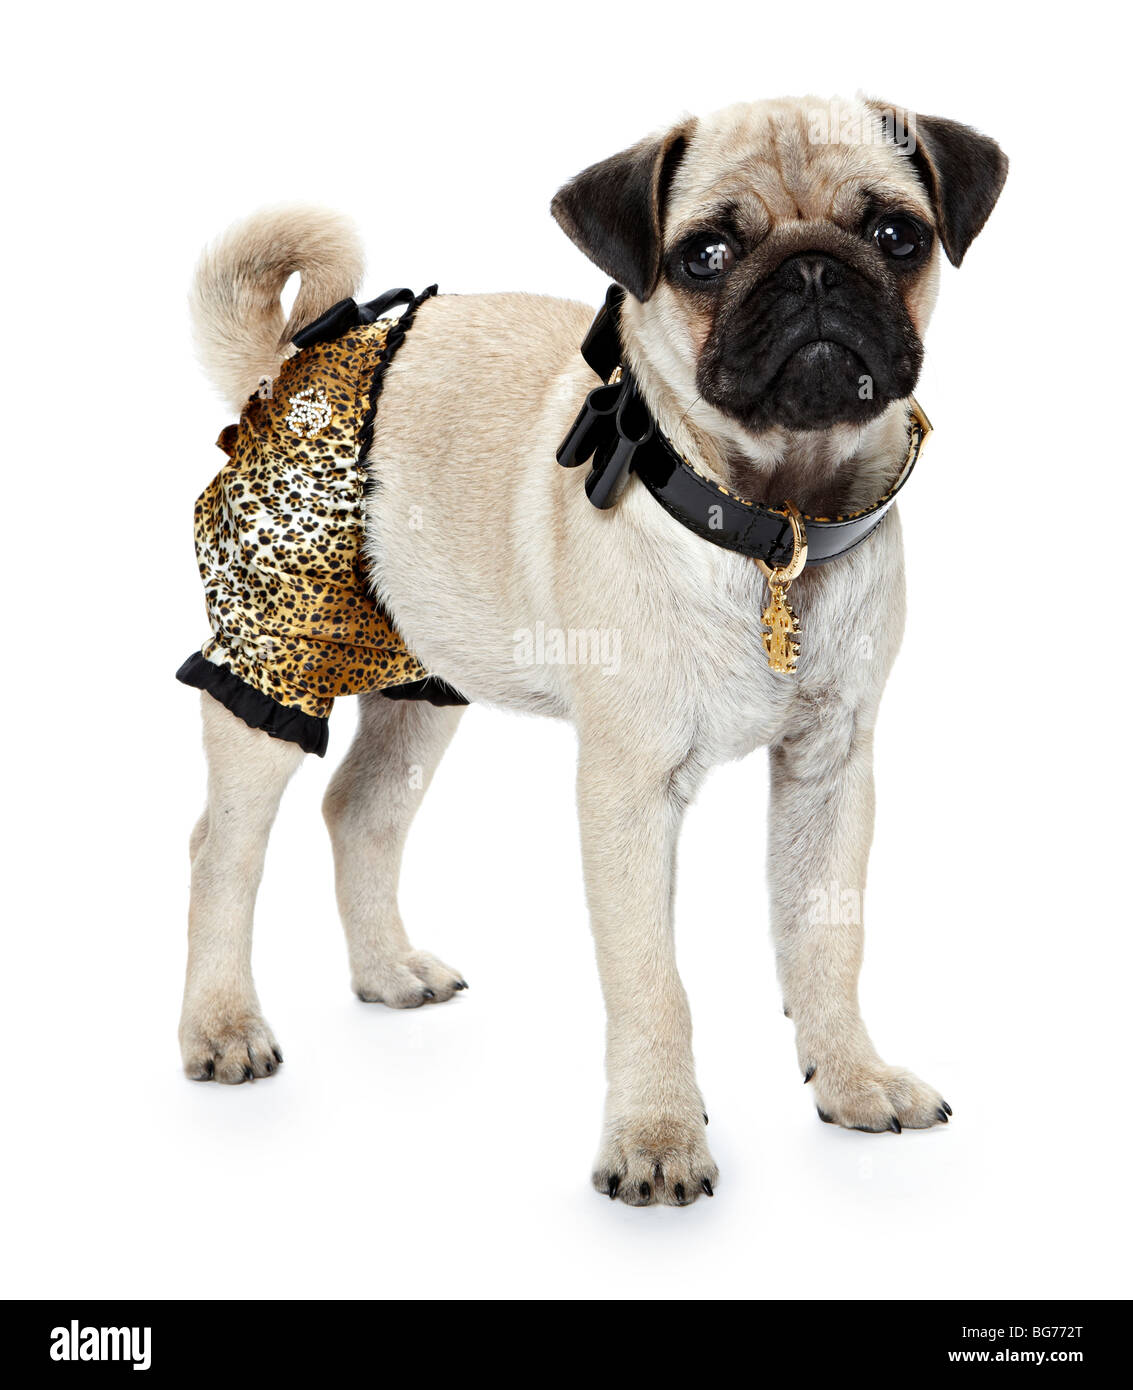 Pug dog dressed up - Stock Image